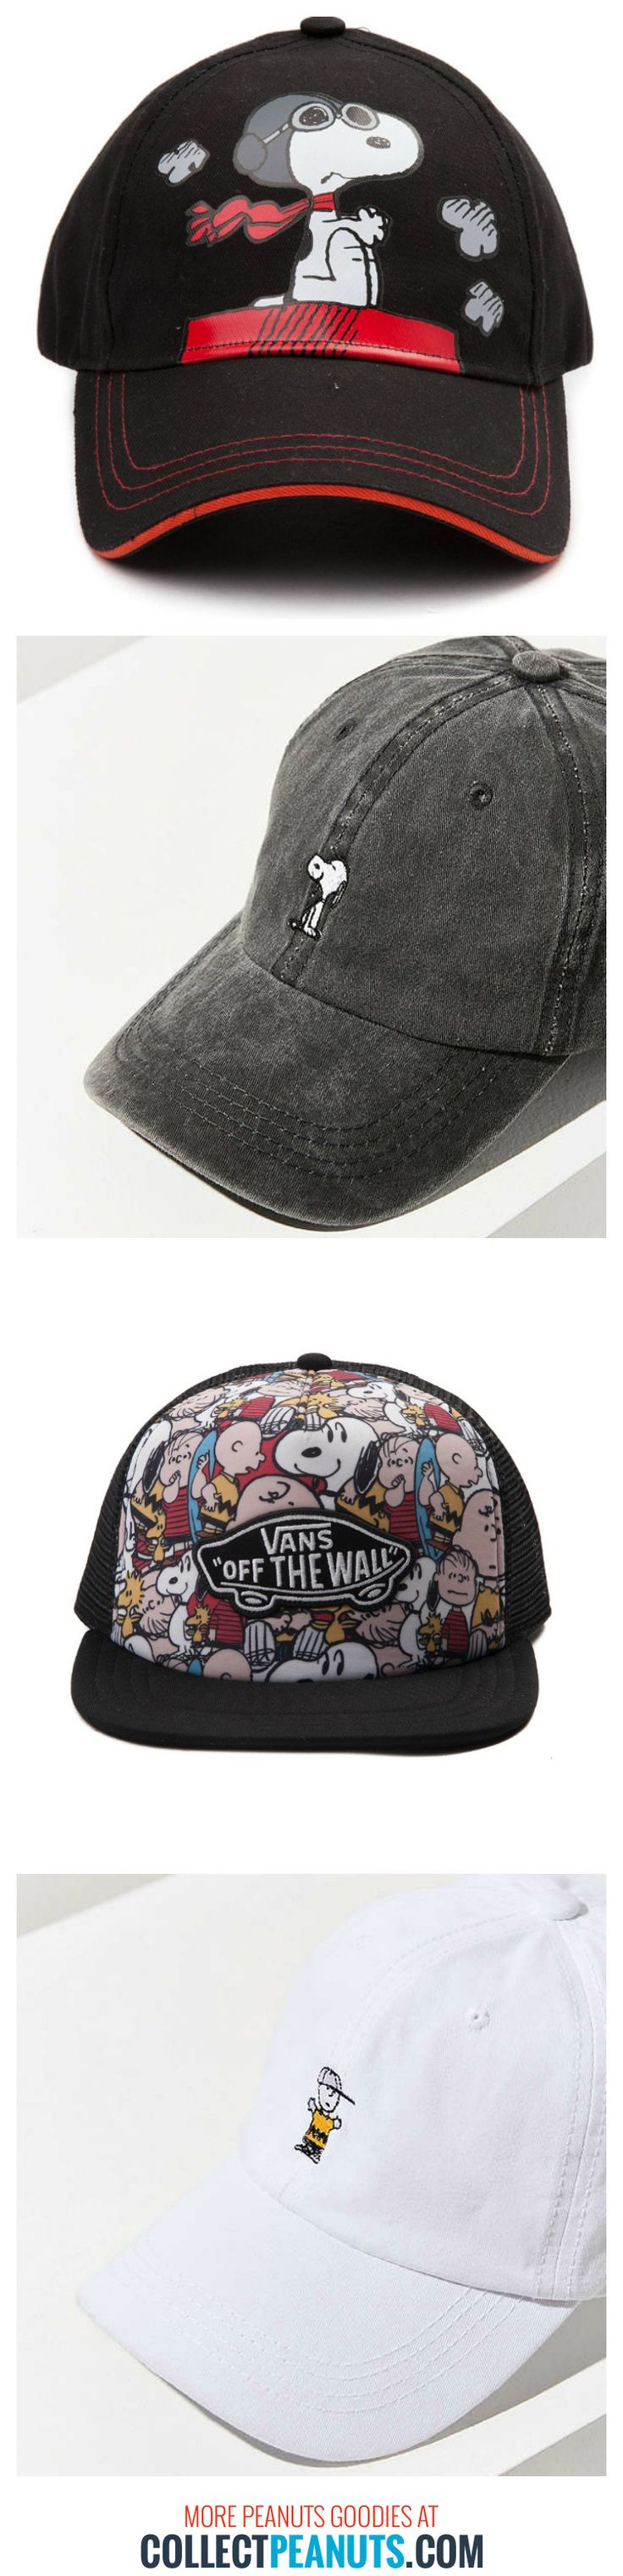 Enjoy the sunny outdoors with a Snoopy hat! Shop a variety of styles in our Peanuts hat round-up at CollectPeanuts.com.